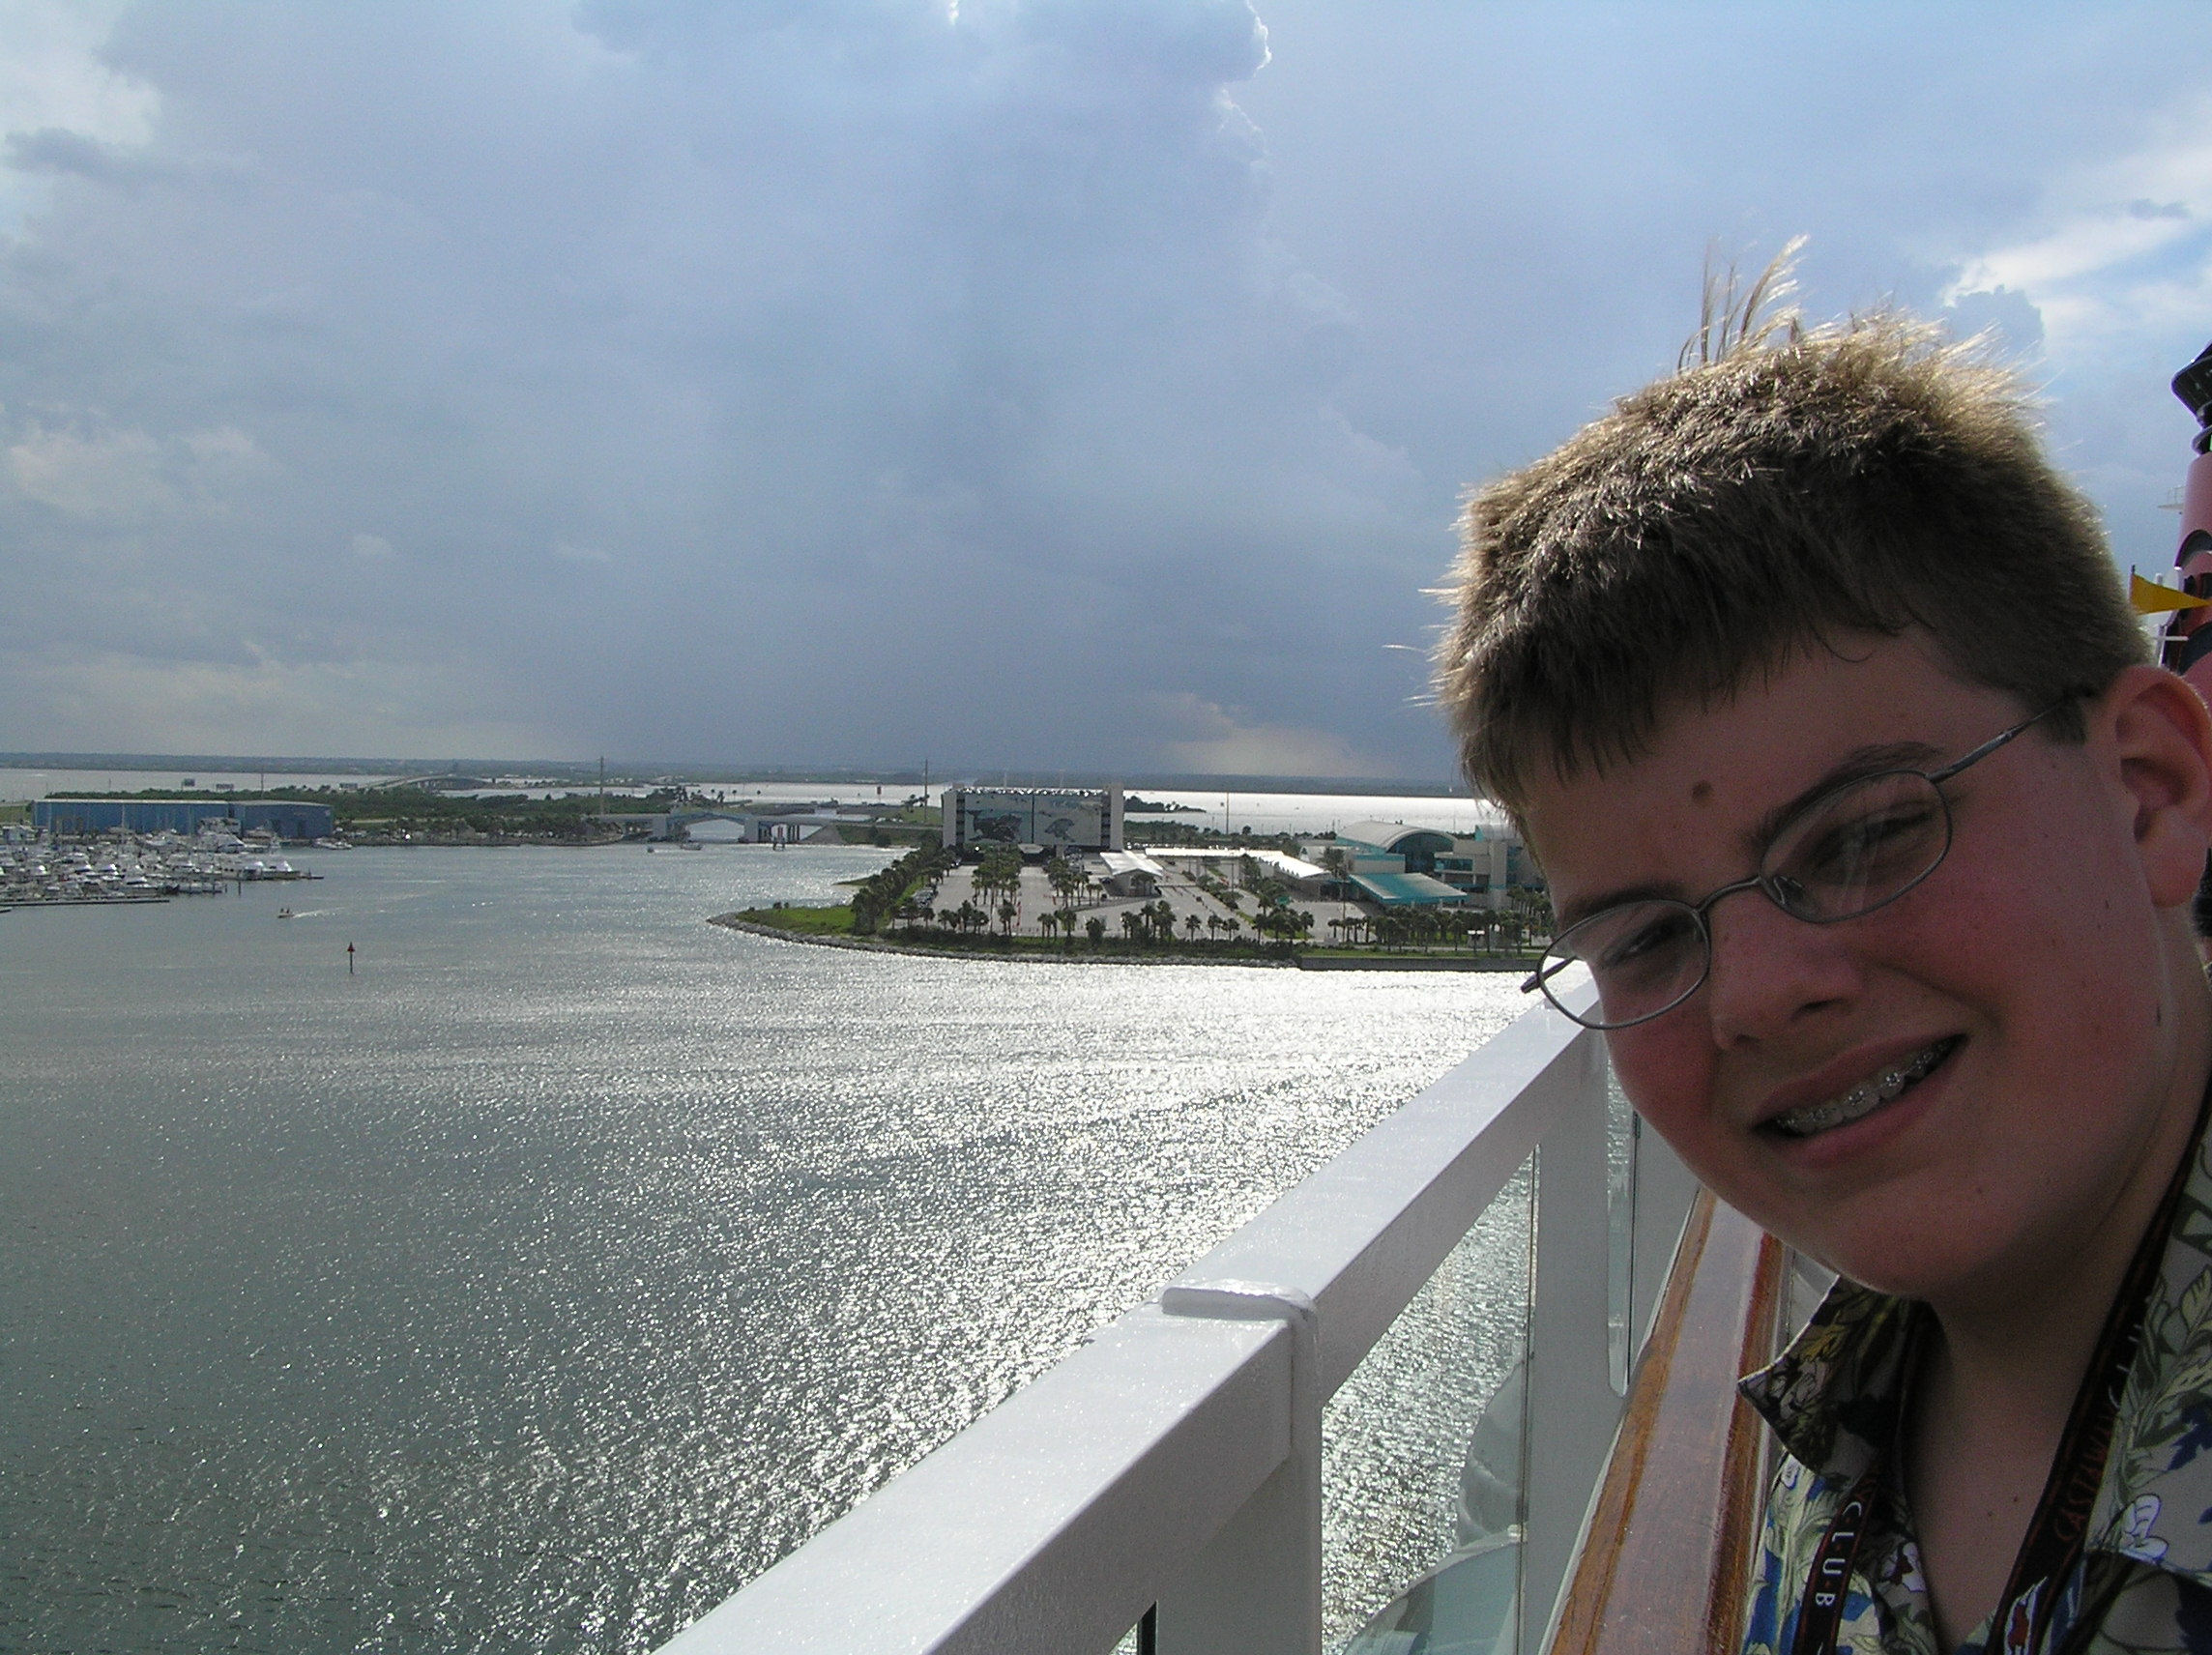 Bon voyage! Here I am as the Disney Cruise Line is leaving Port Canaveral, Florida.